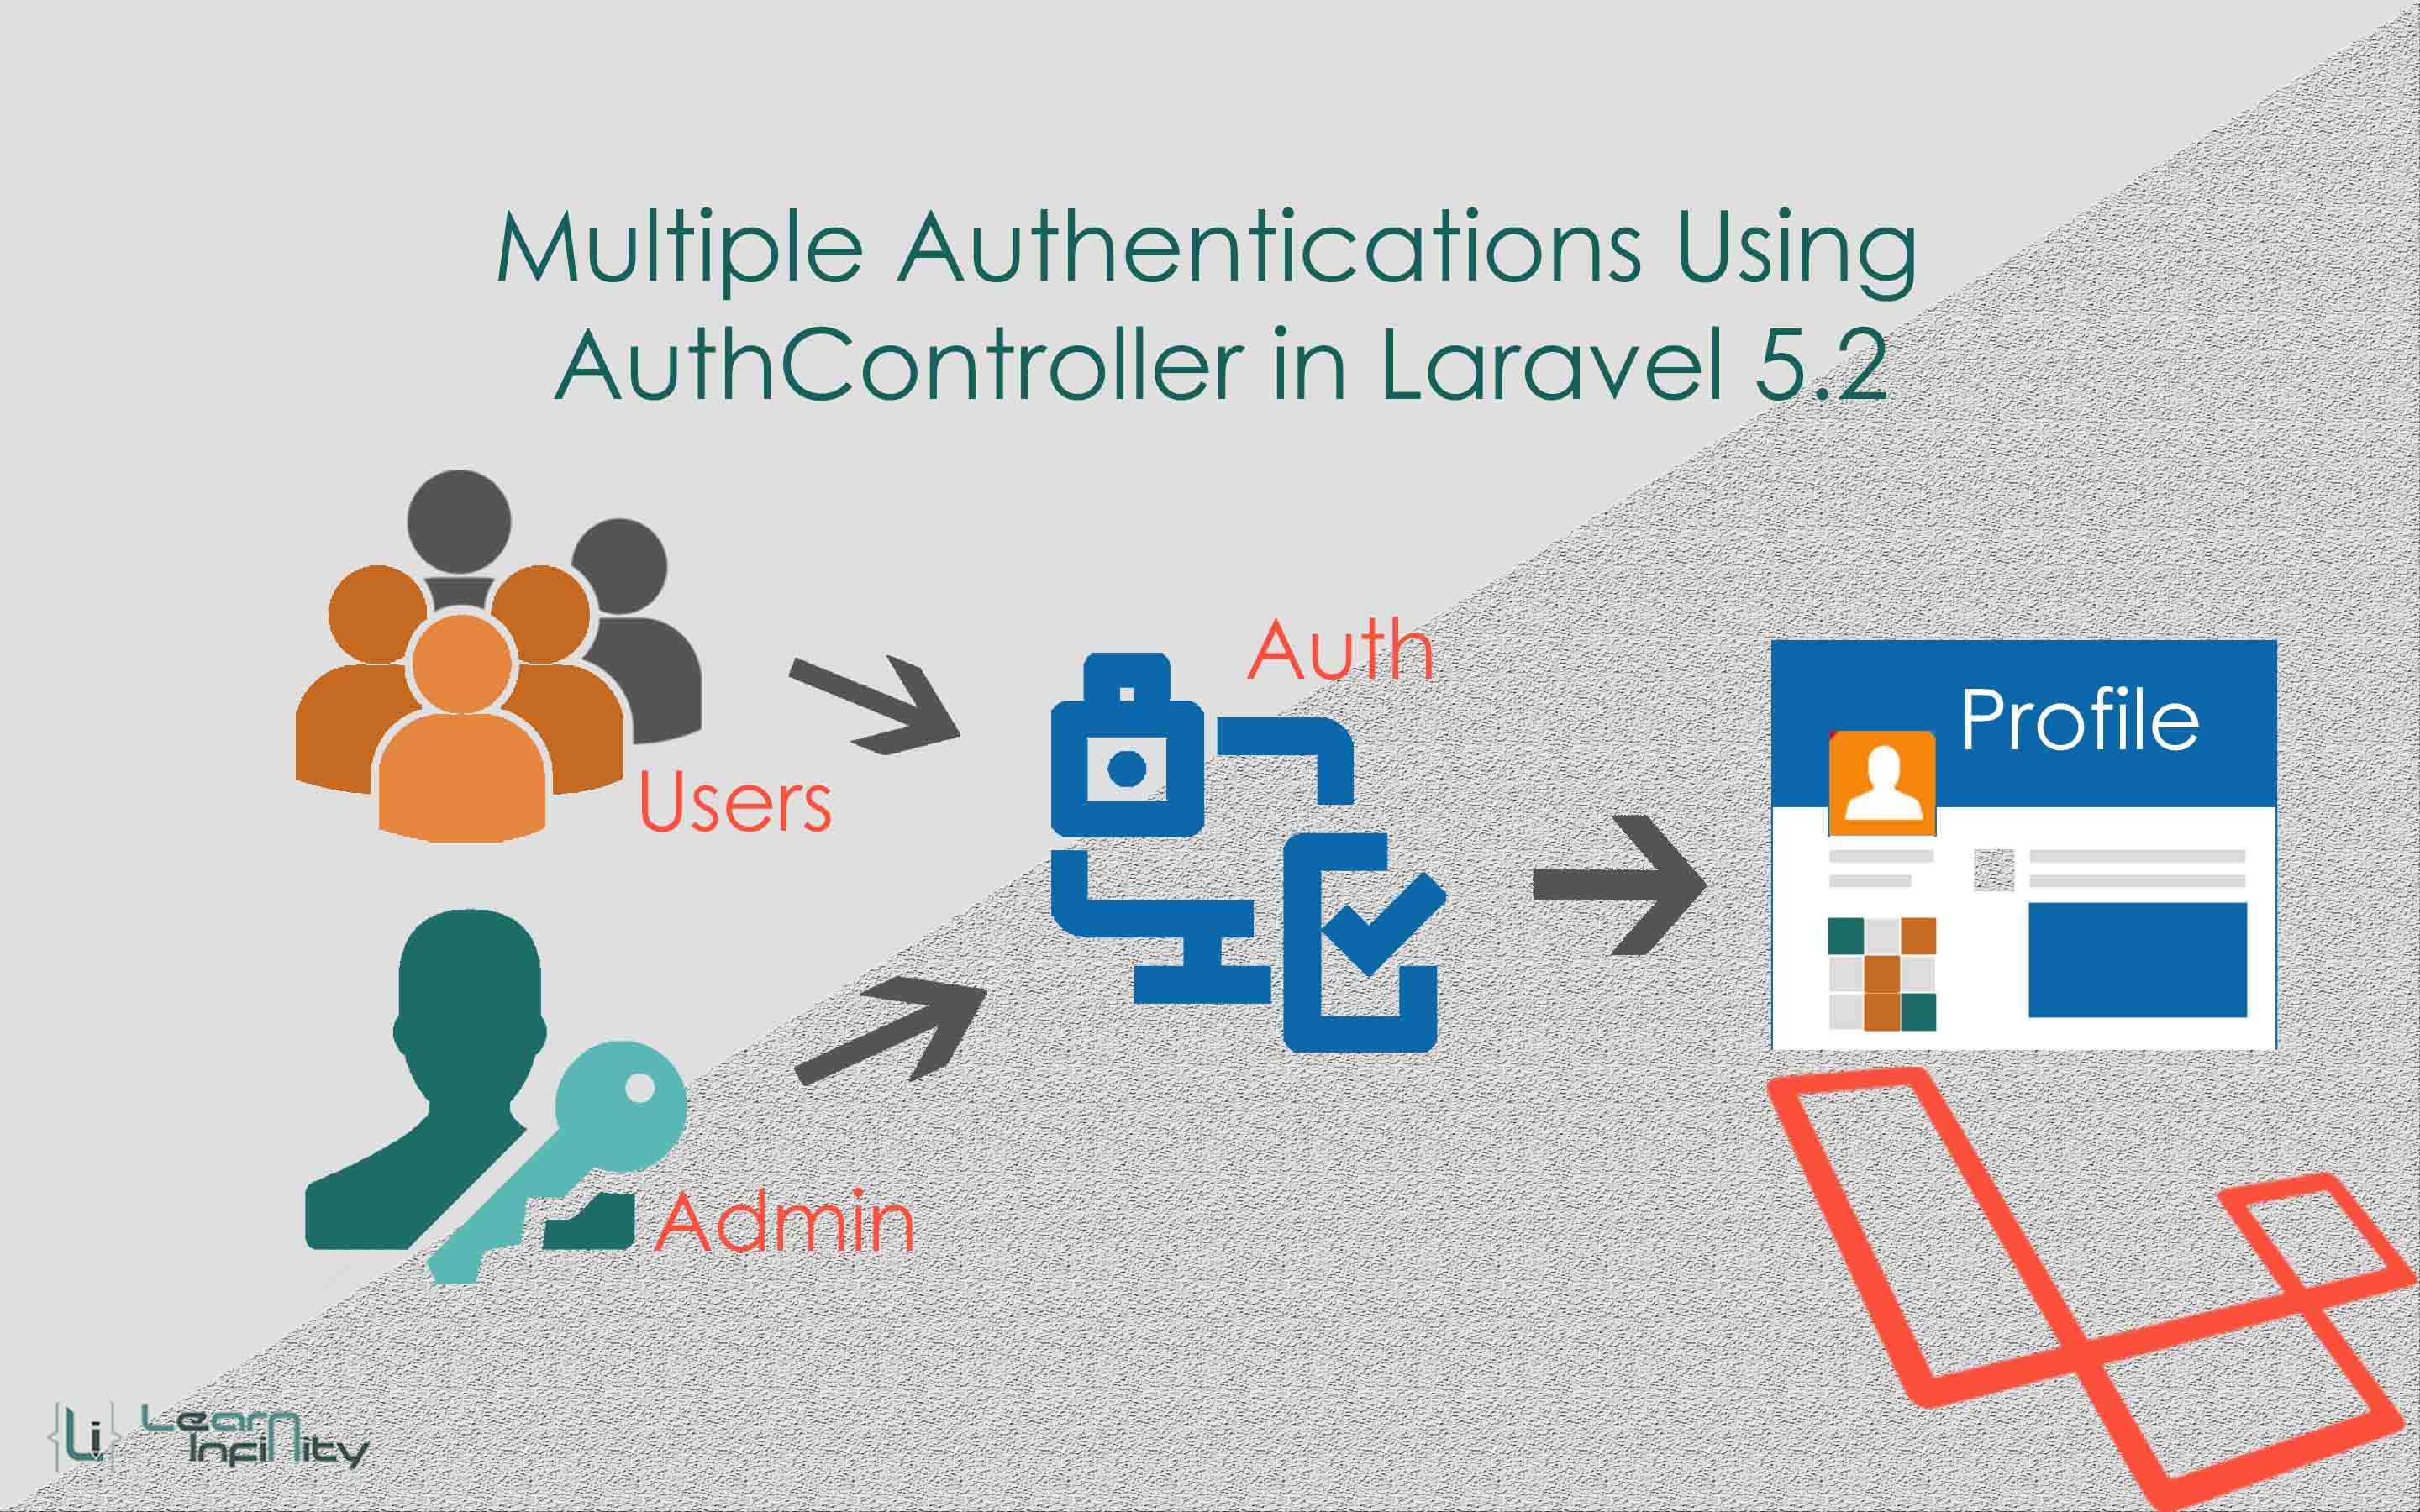 Multiple authentications using AuthController in Laravel 5.2